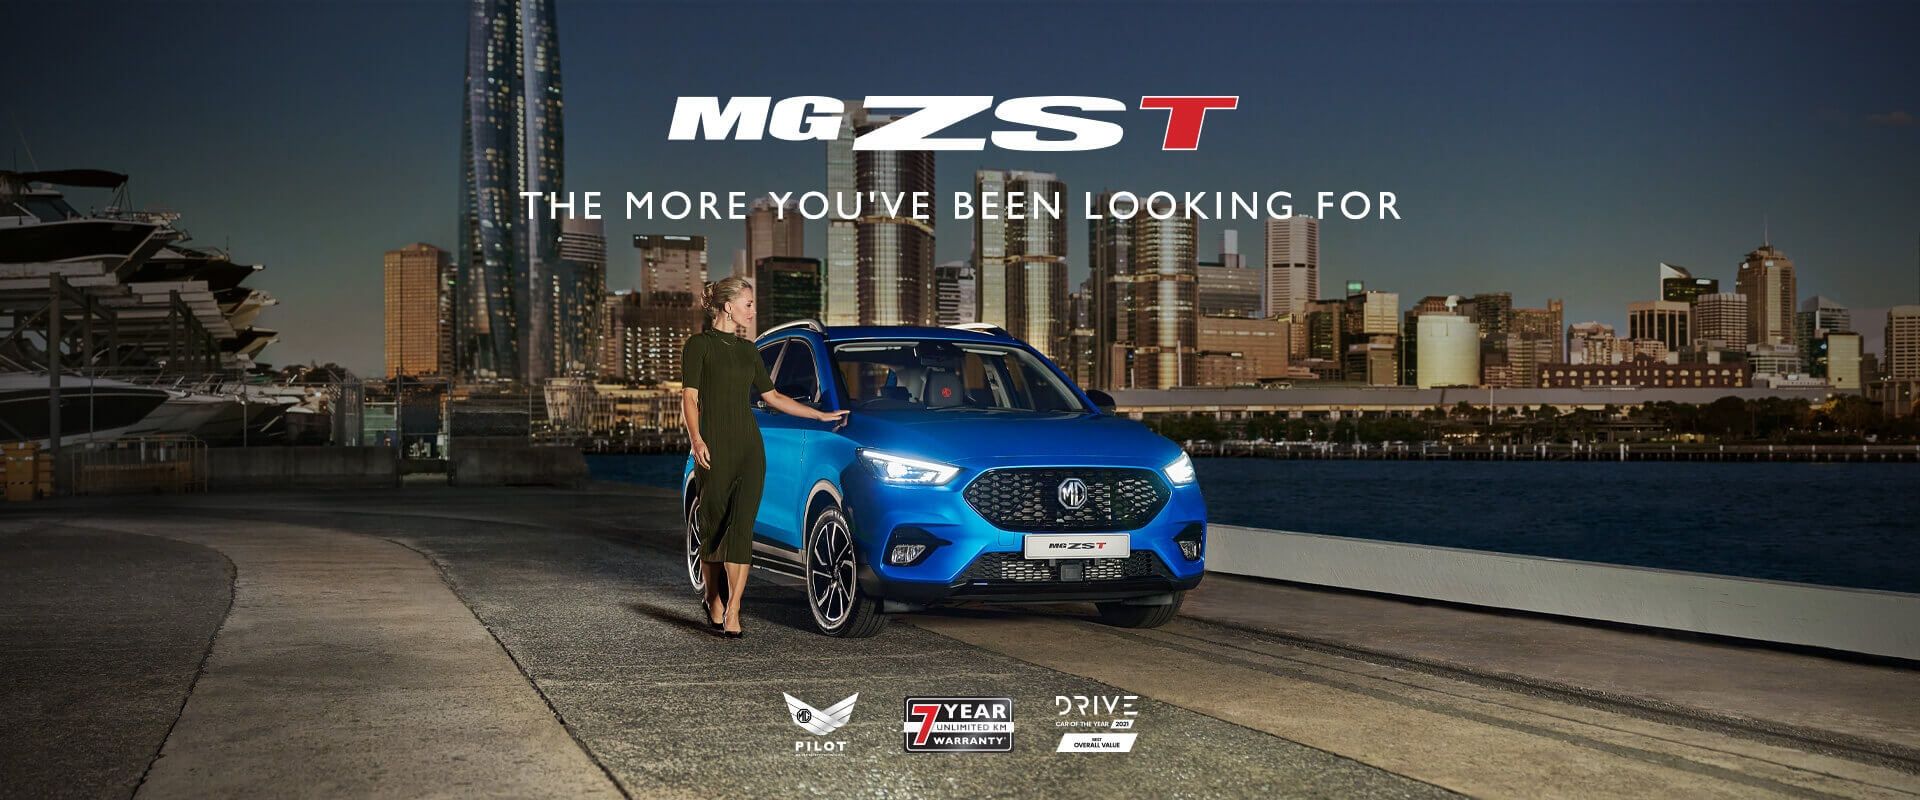 MG ZST - The More You've Been Looking For